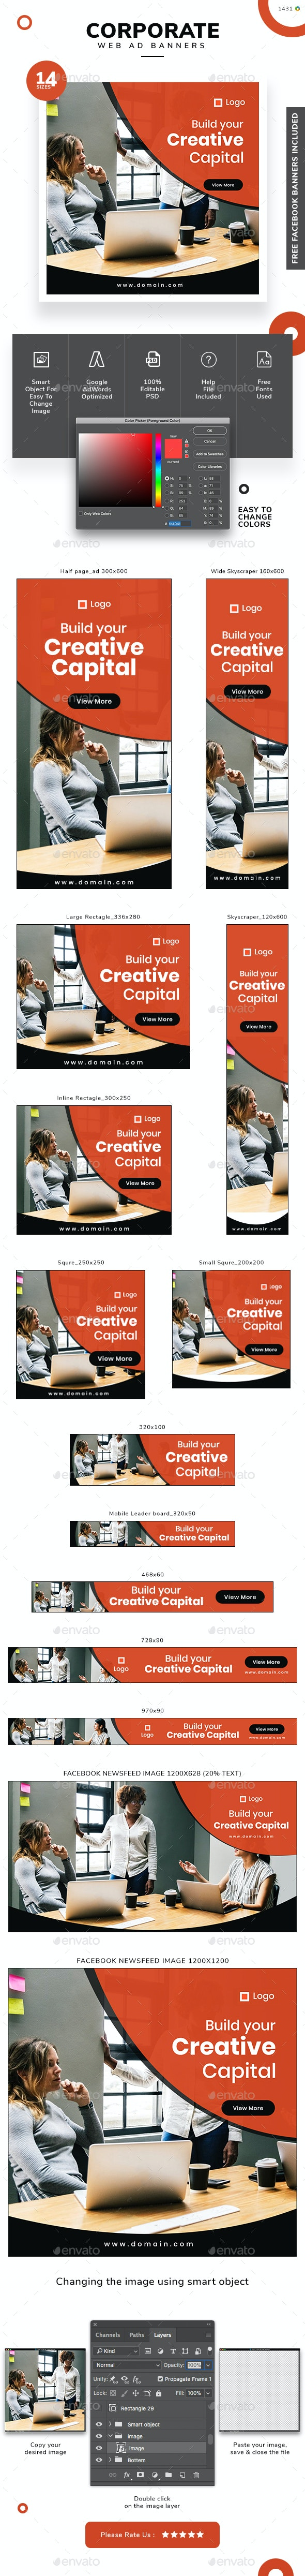 Corporate Web Banner Set - Banners & Ads Web Elements